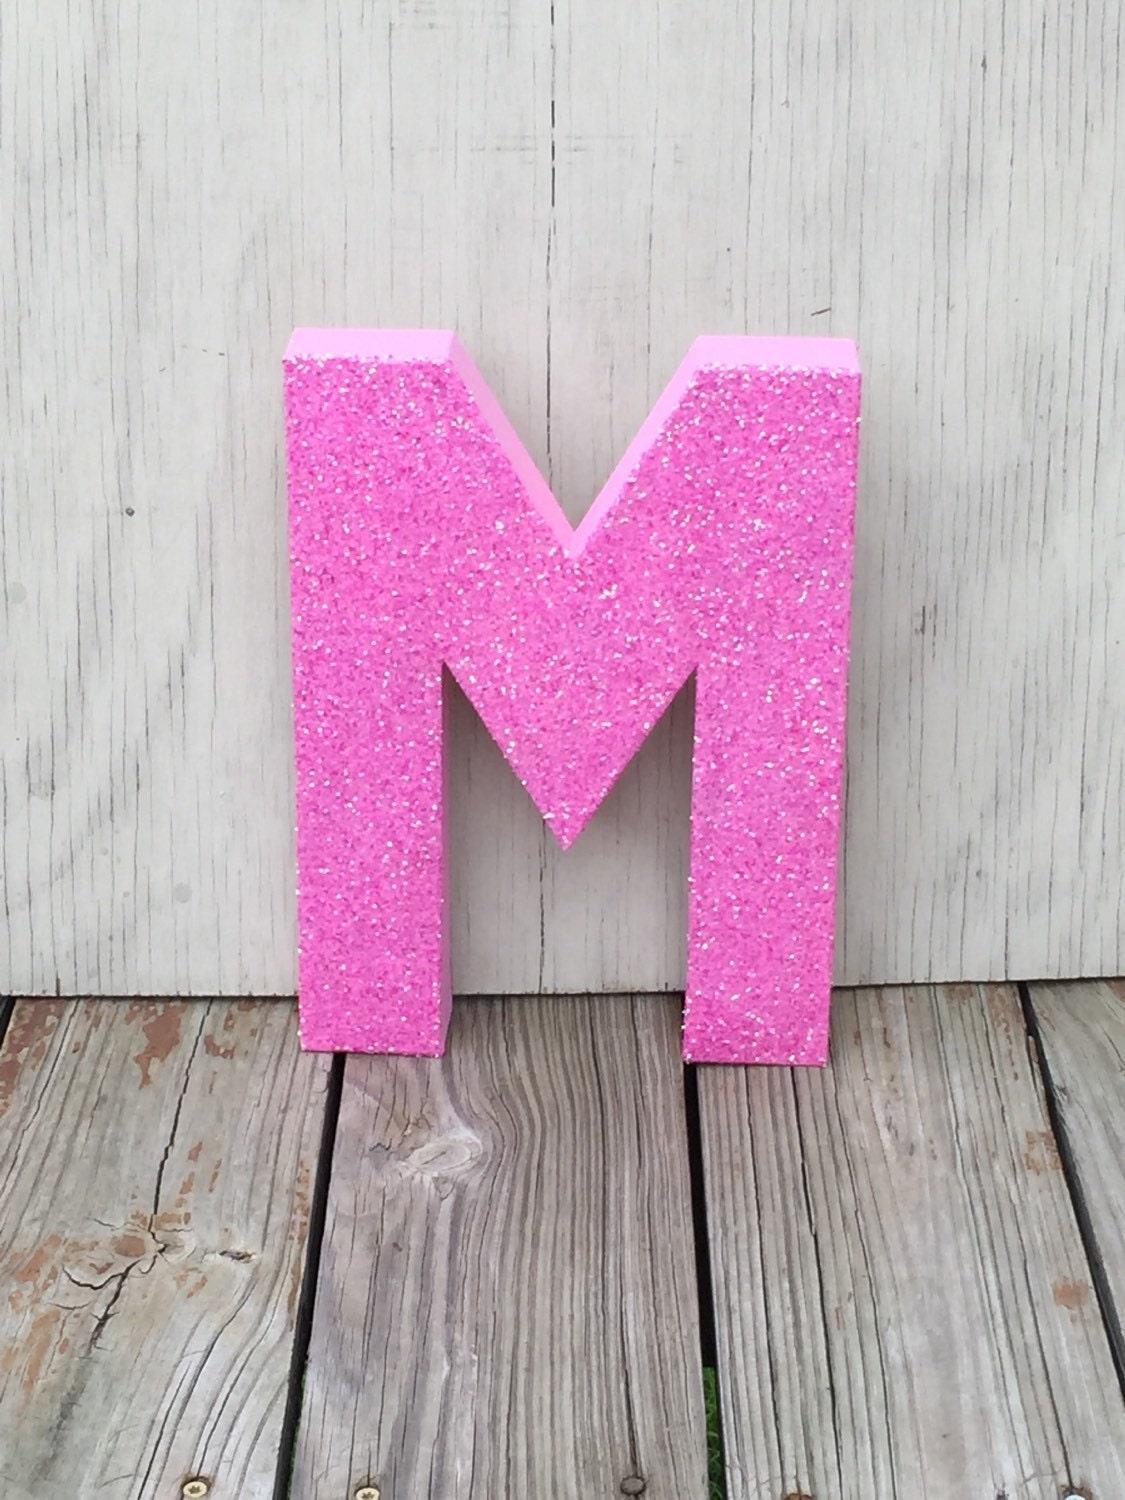 Decorative pink glitter 12 stand up wall letters photo for Pink glitter letters